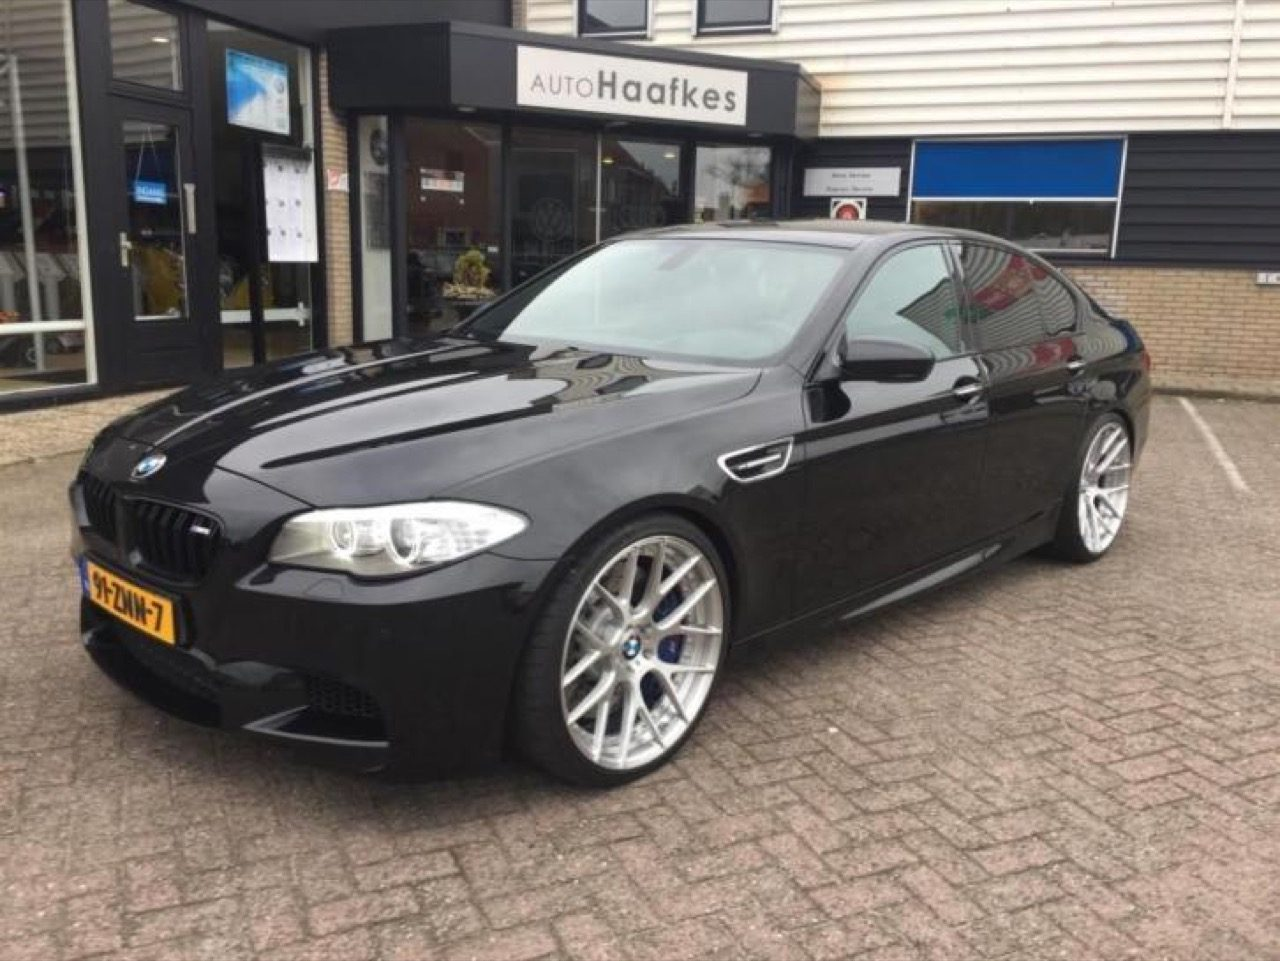 dit is de snelste bmw m5 van marktplaats. Black Bedroom Furniture Sets. Home Design Ideas